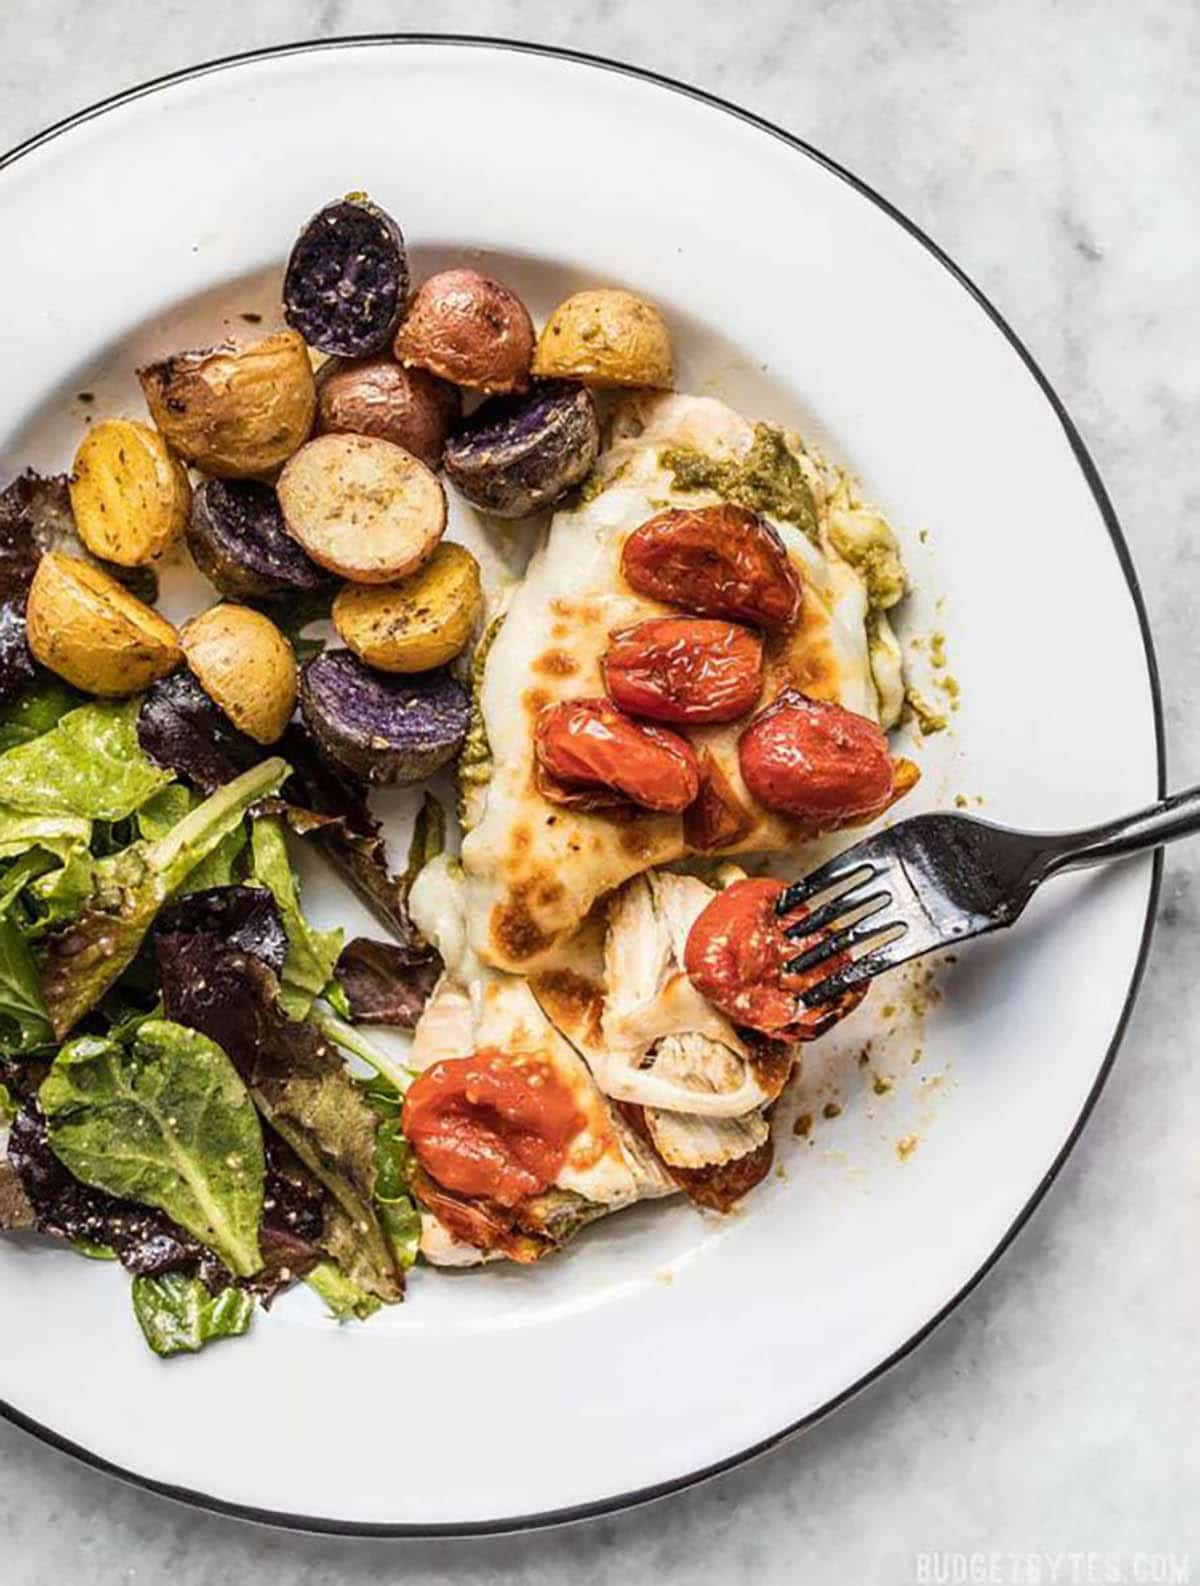 Easy Sheet Pan Pesto Chicken Dinner with marble potatoes, salad and topped with cherry tomatoes